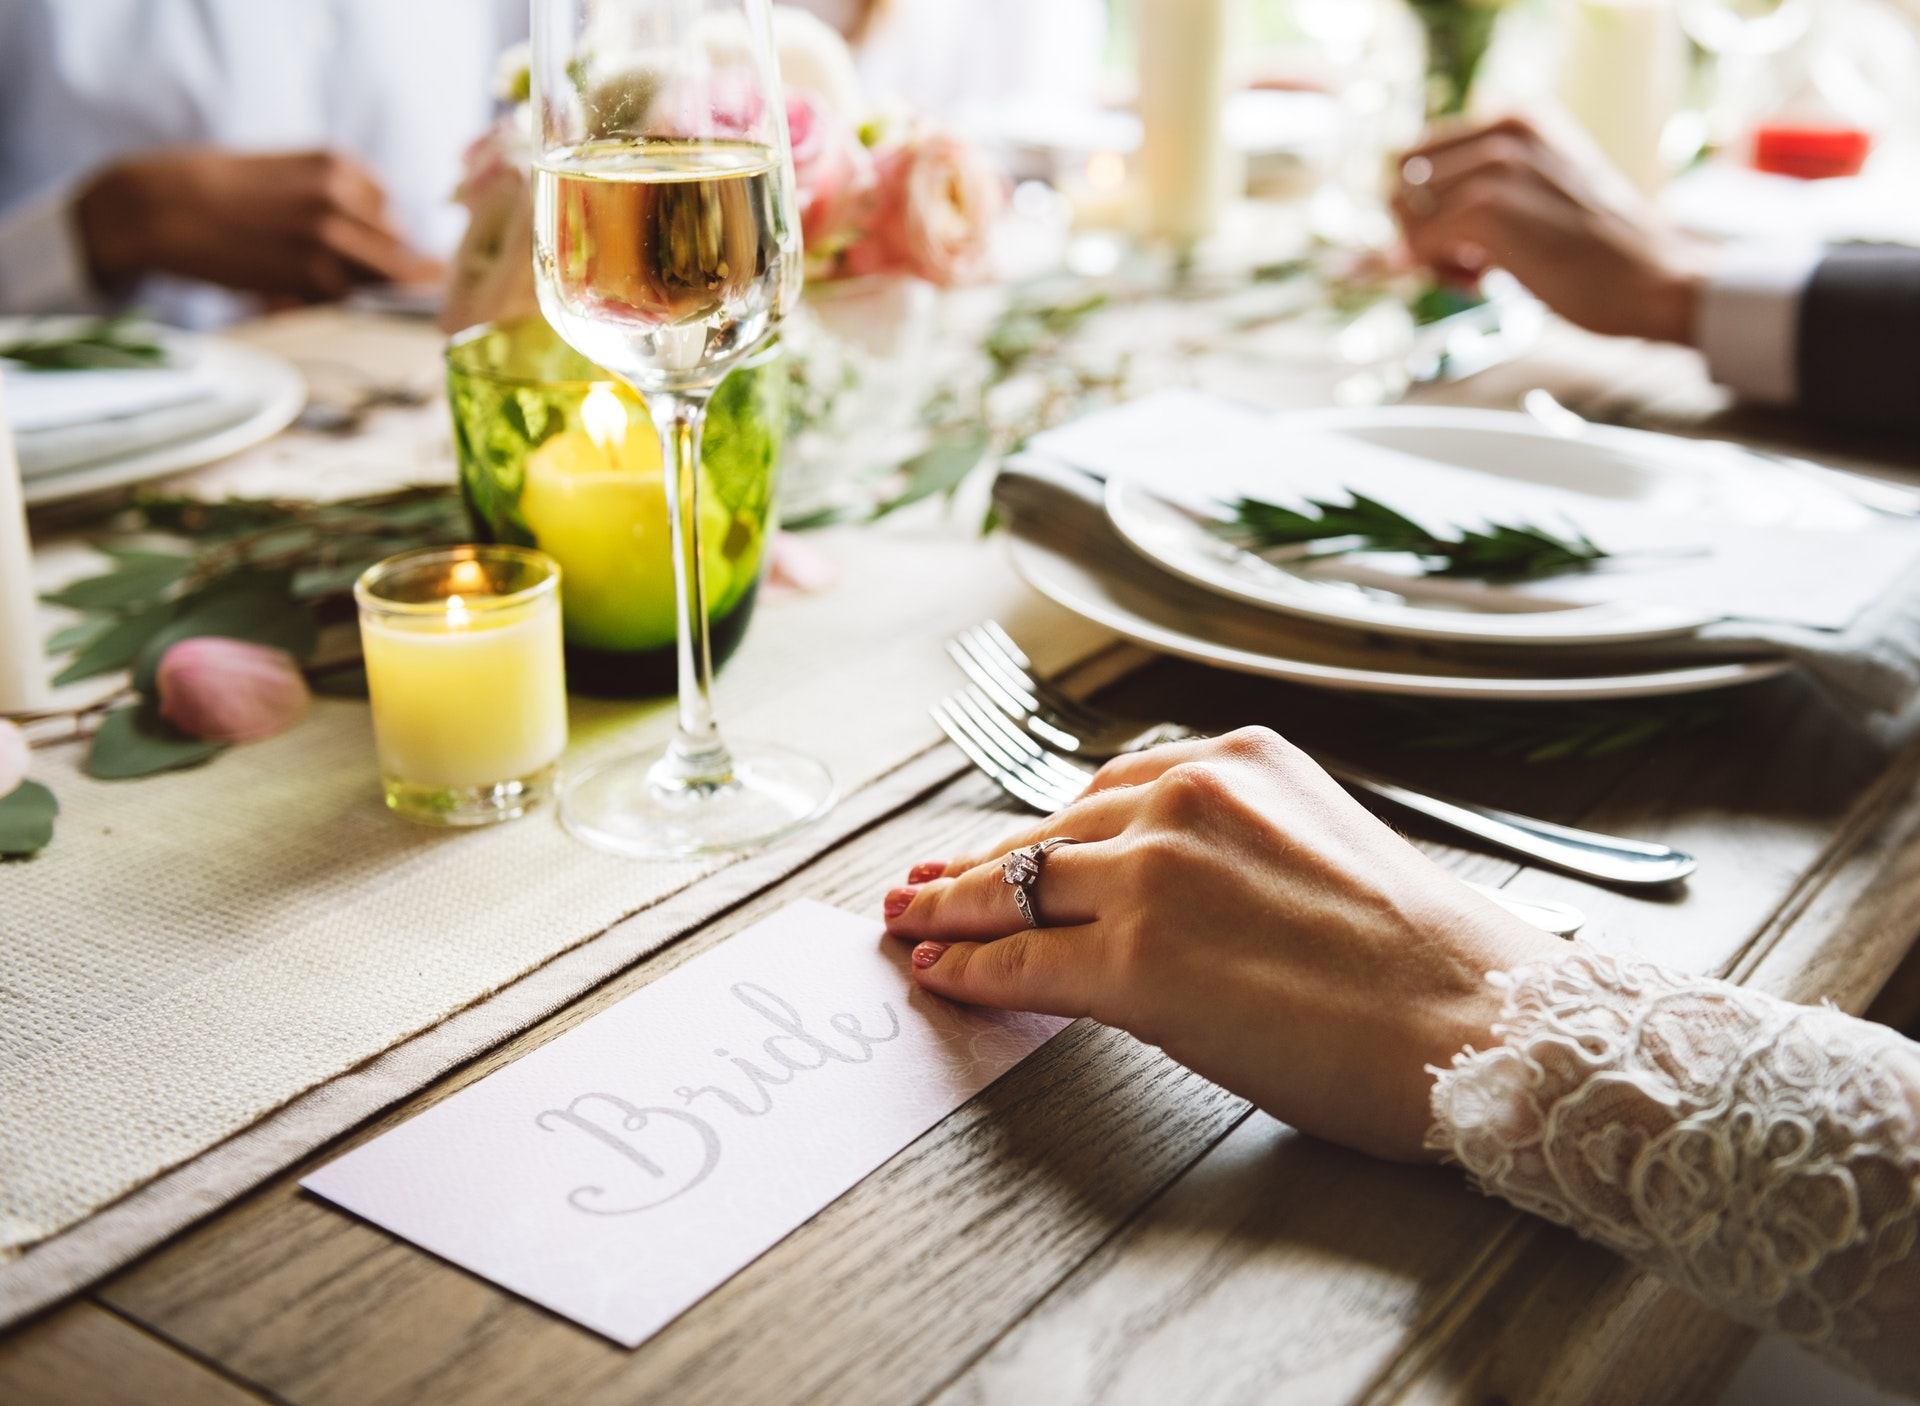 How to choose the right wedding menu